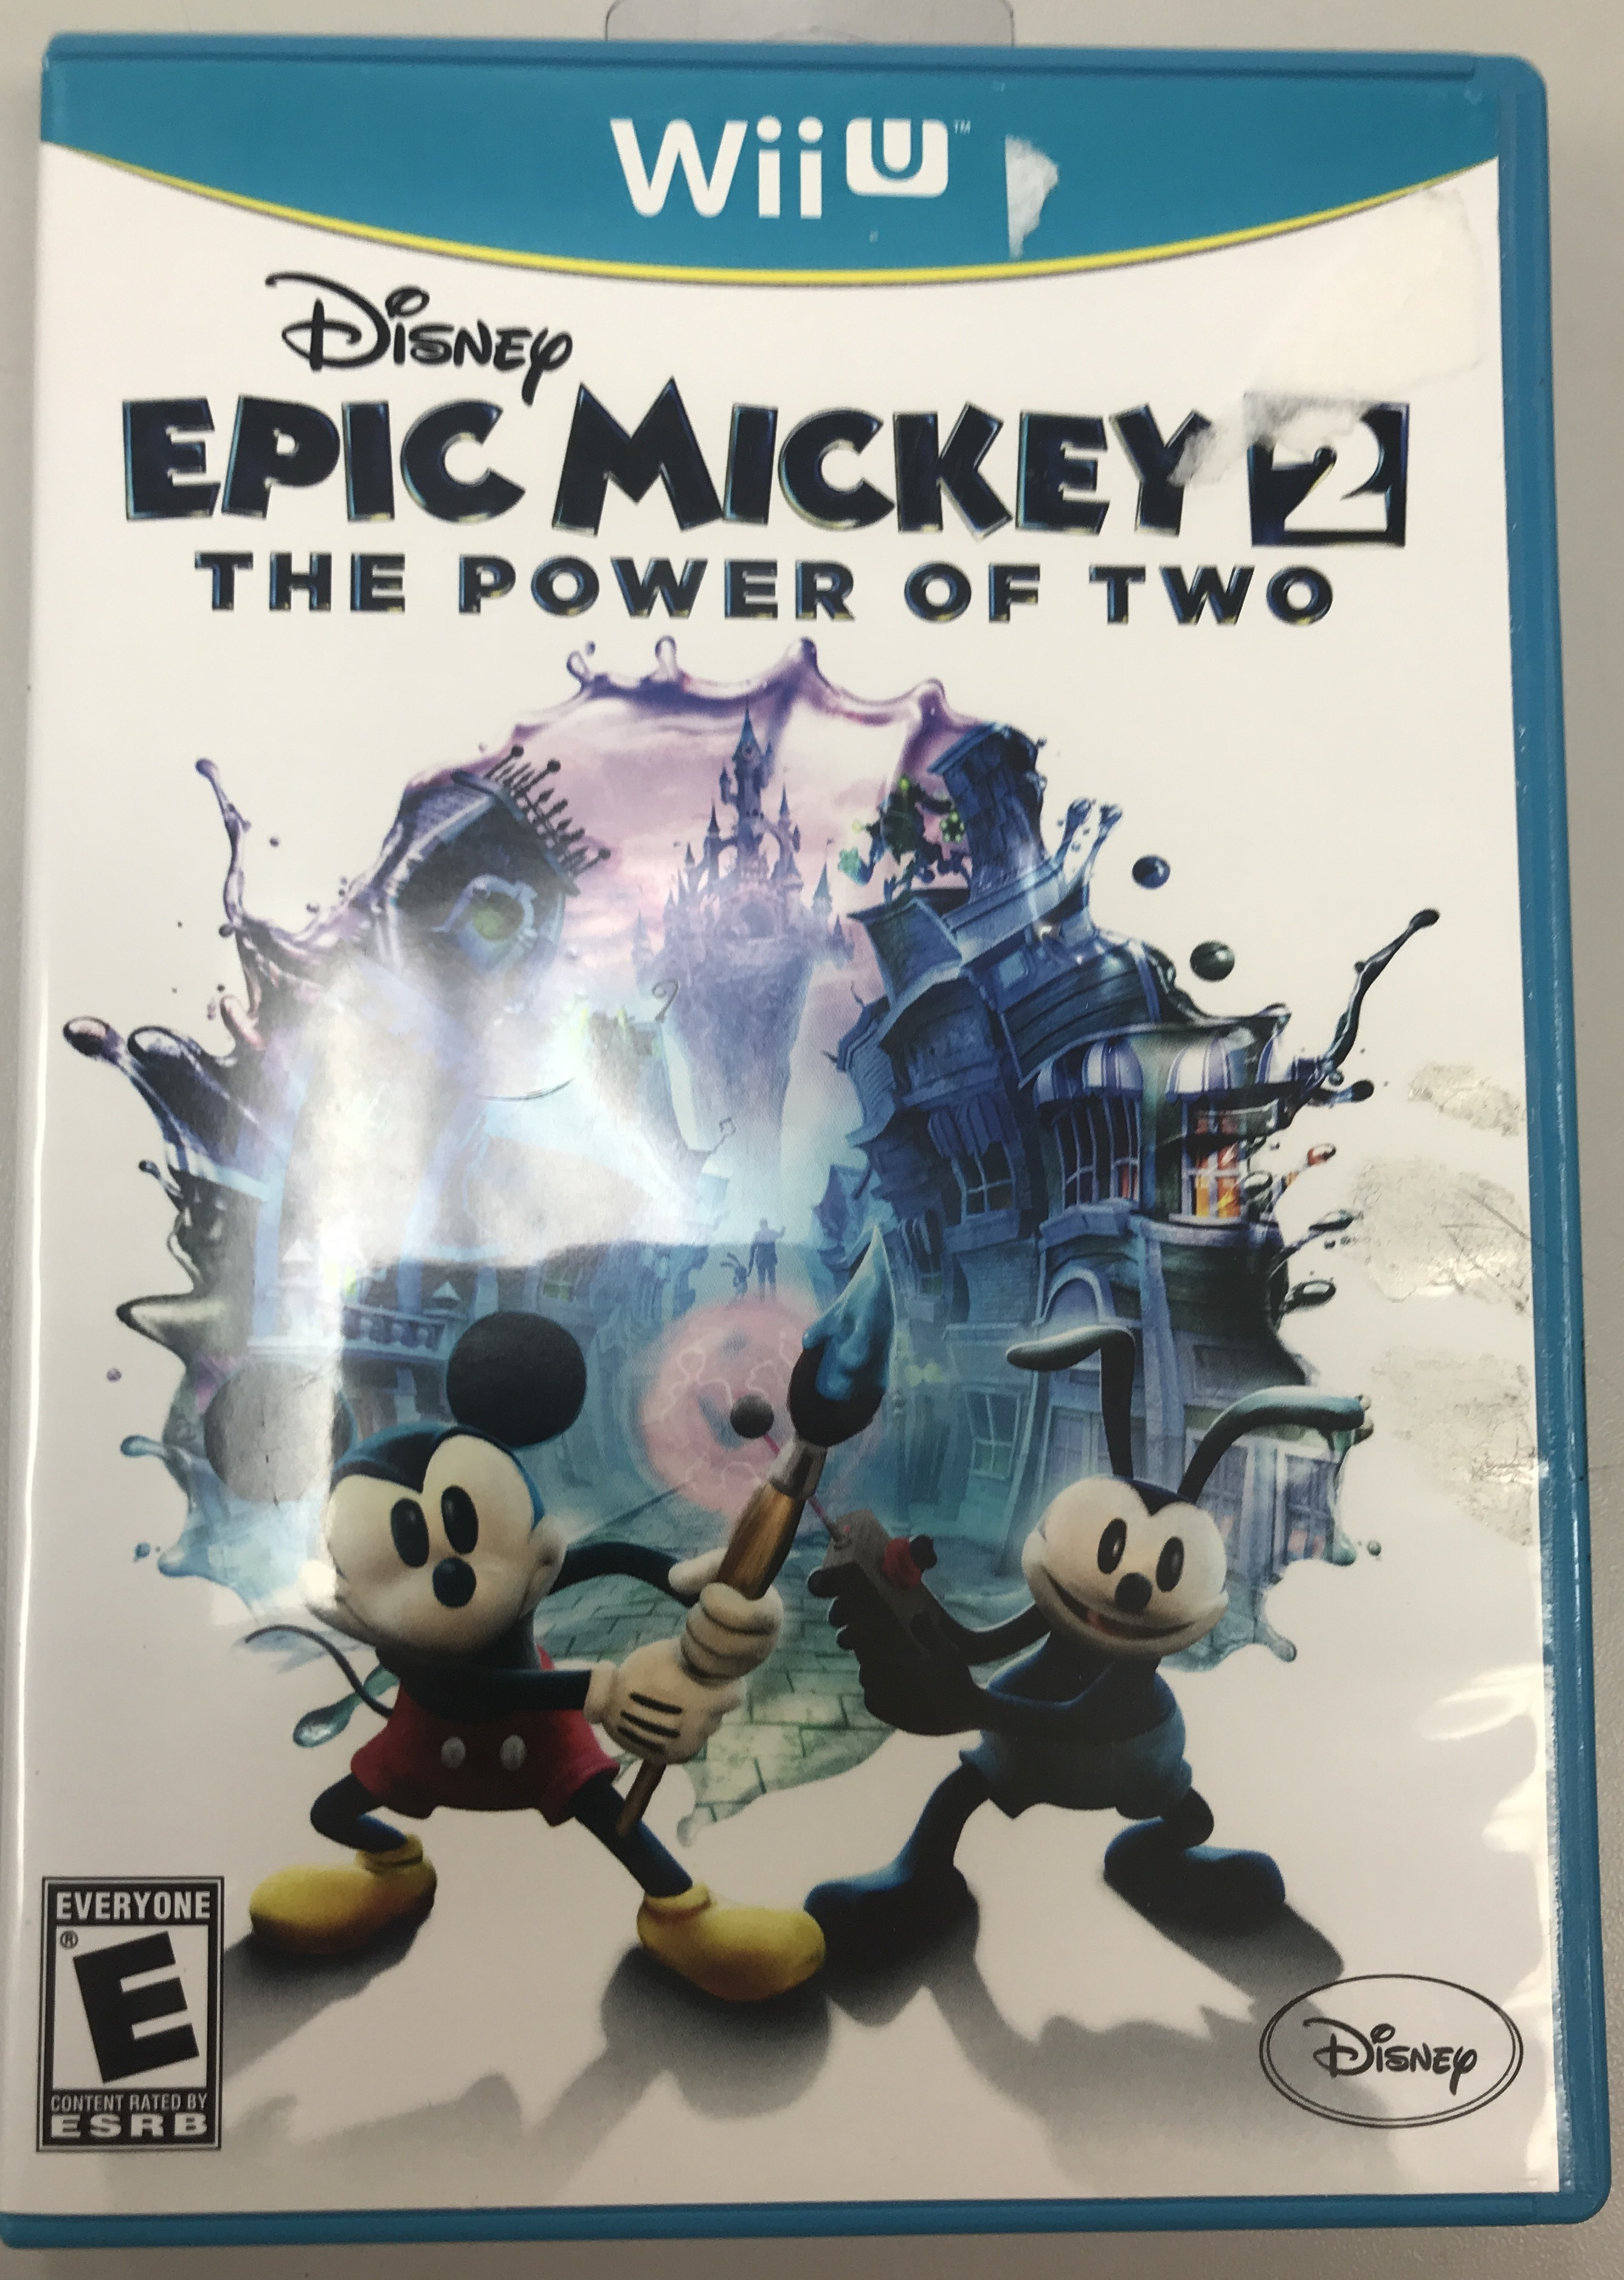 DISNEY EPIC MICKEY 2: THE POWER OF TWO - NINTENDO WII U GAME